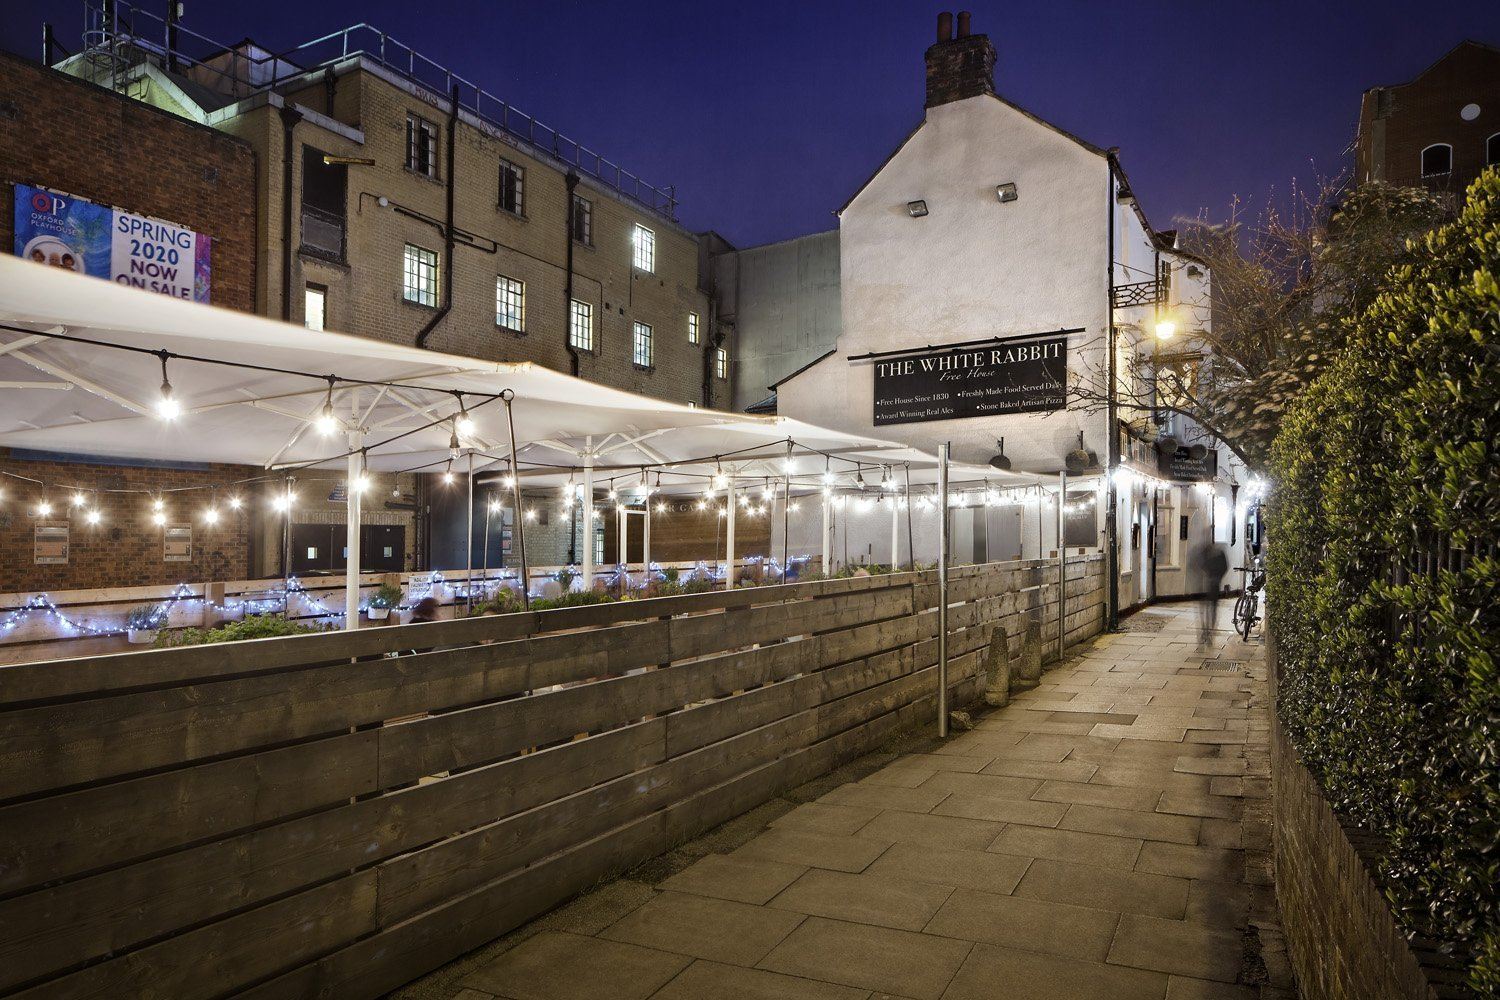 The White Rabbit - Pizza, Pub & Beer Garden in Oxford - Gallery Image 03